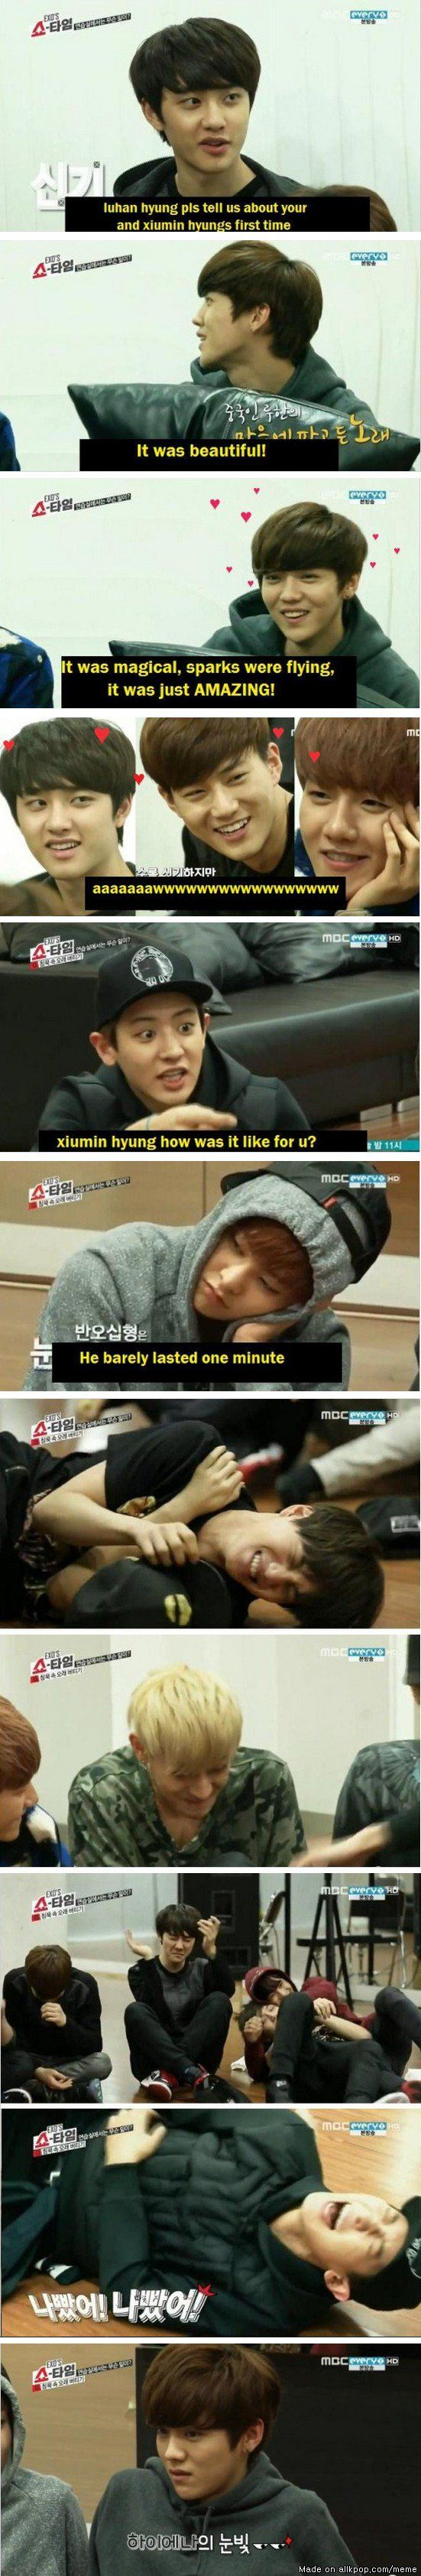 Poor Lulu loool | allkpop Meme Center